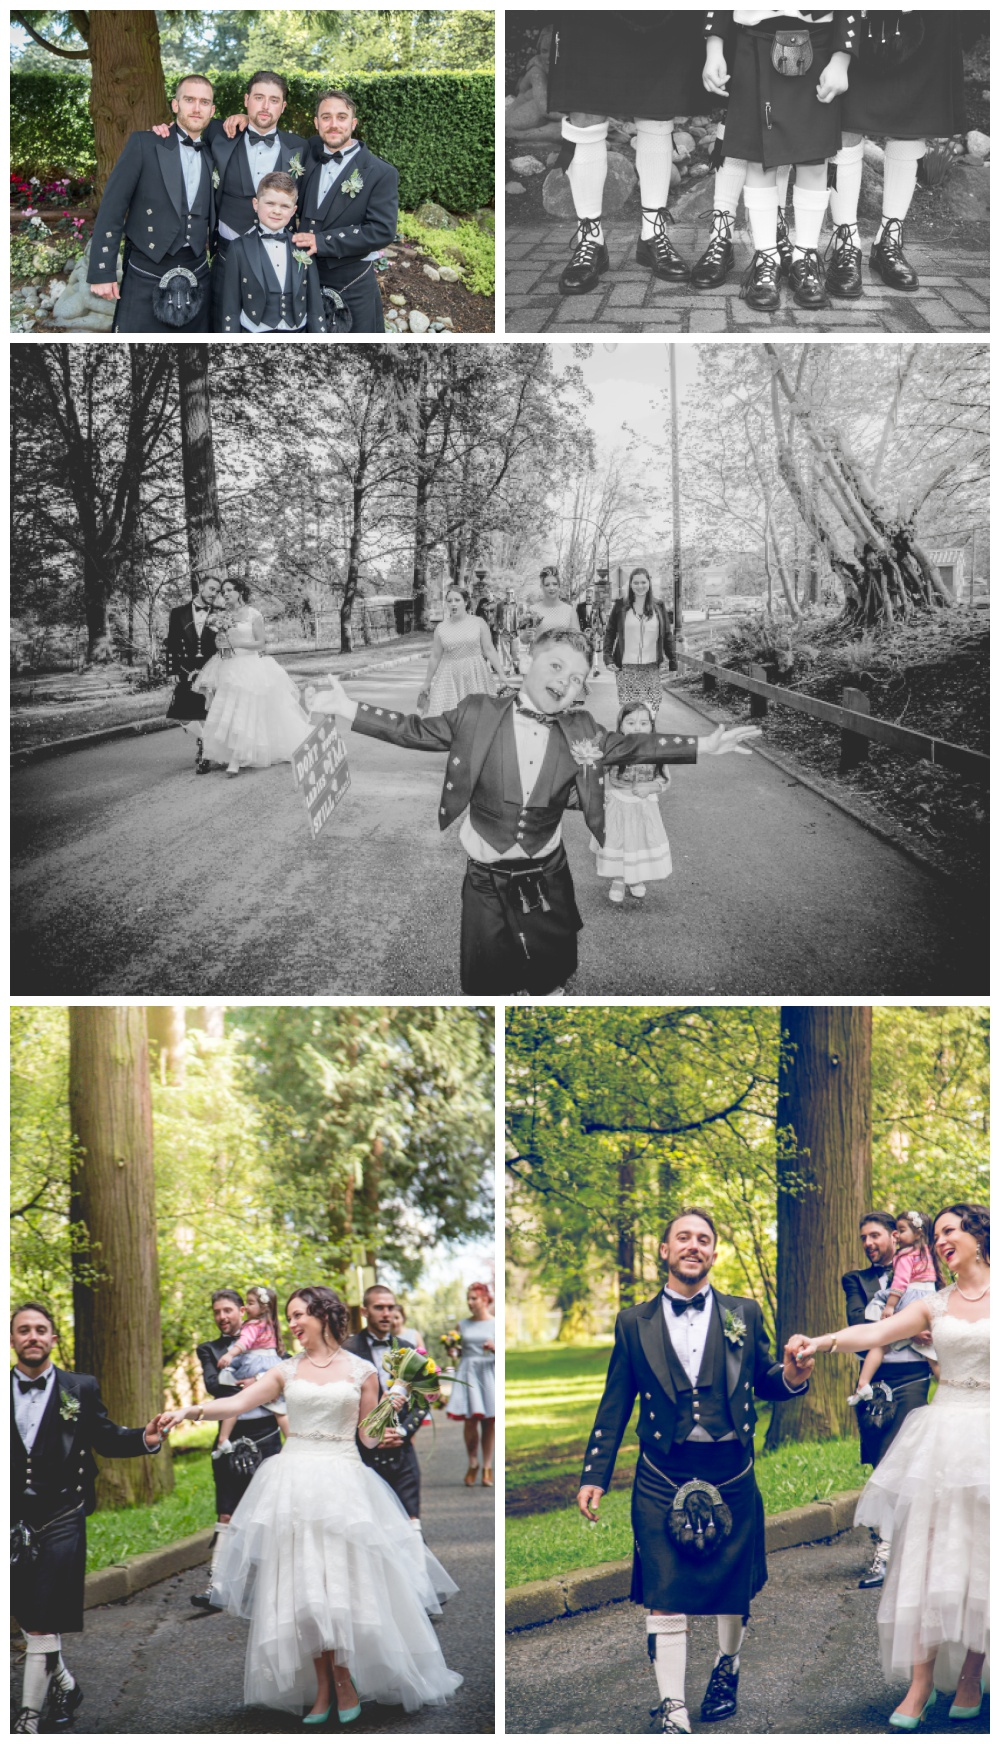 Wedding party walking - Vancouver Island Photographer